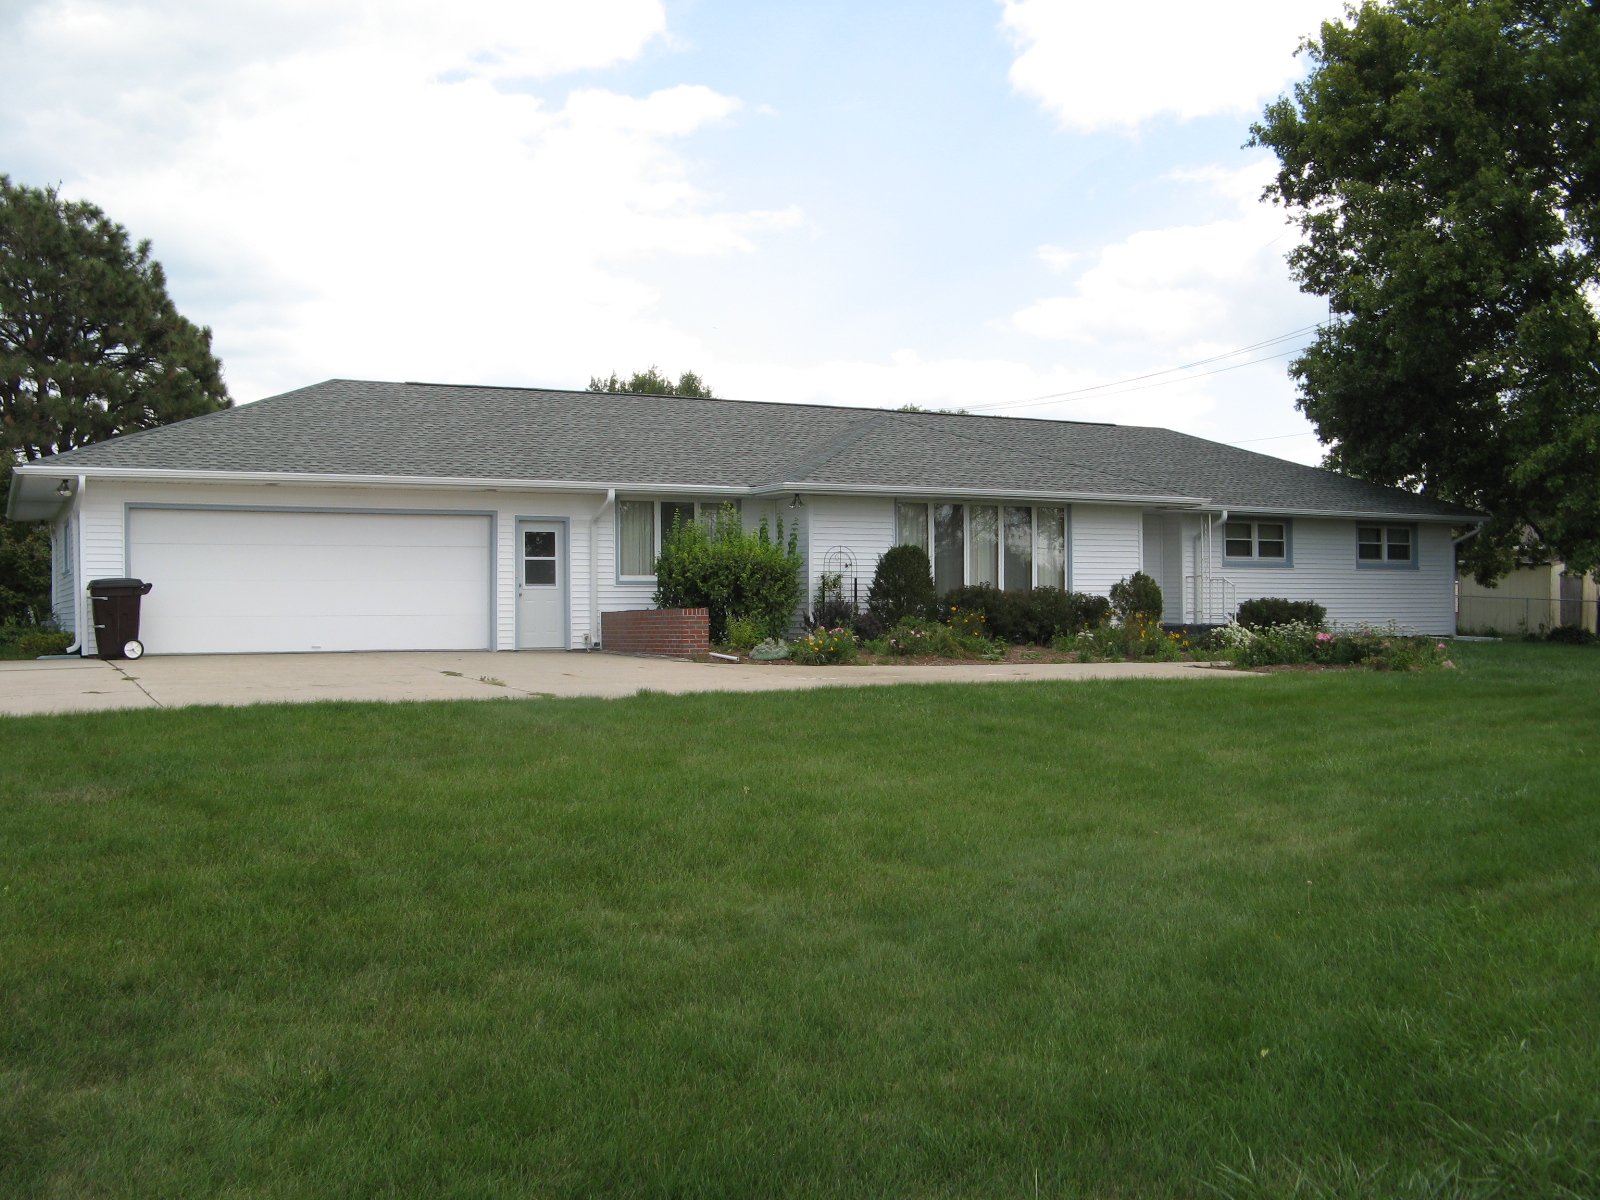 PRICE REDUCED – 551 E 13th Street:  Great 3 bedroom Ranch on Large Lot